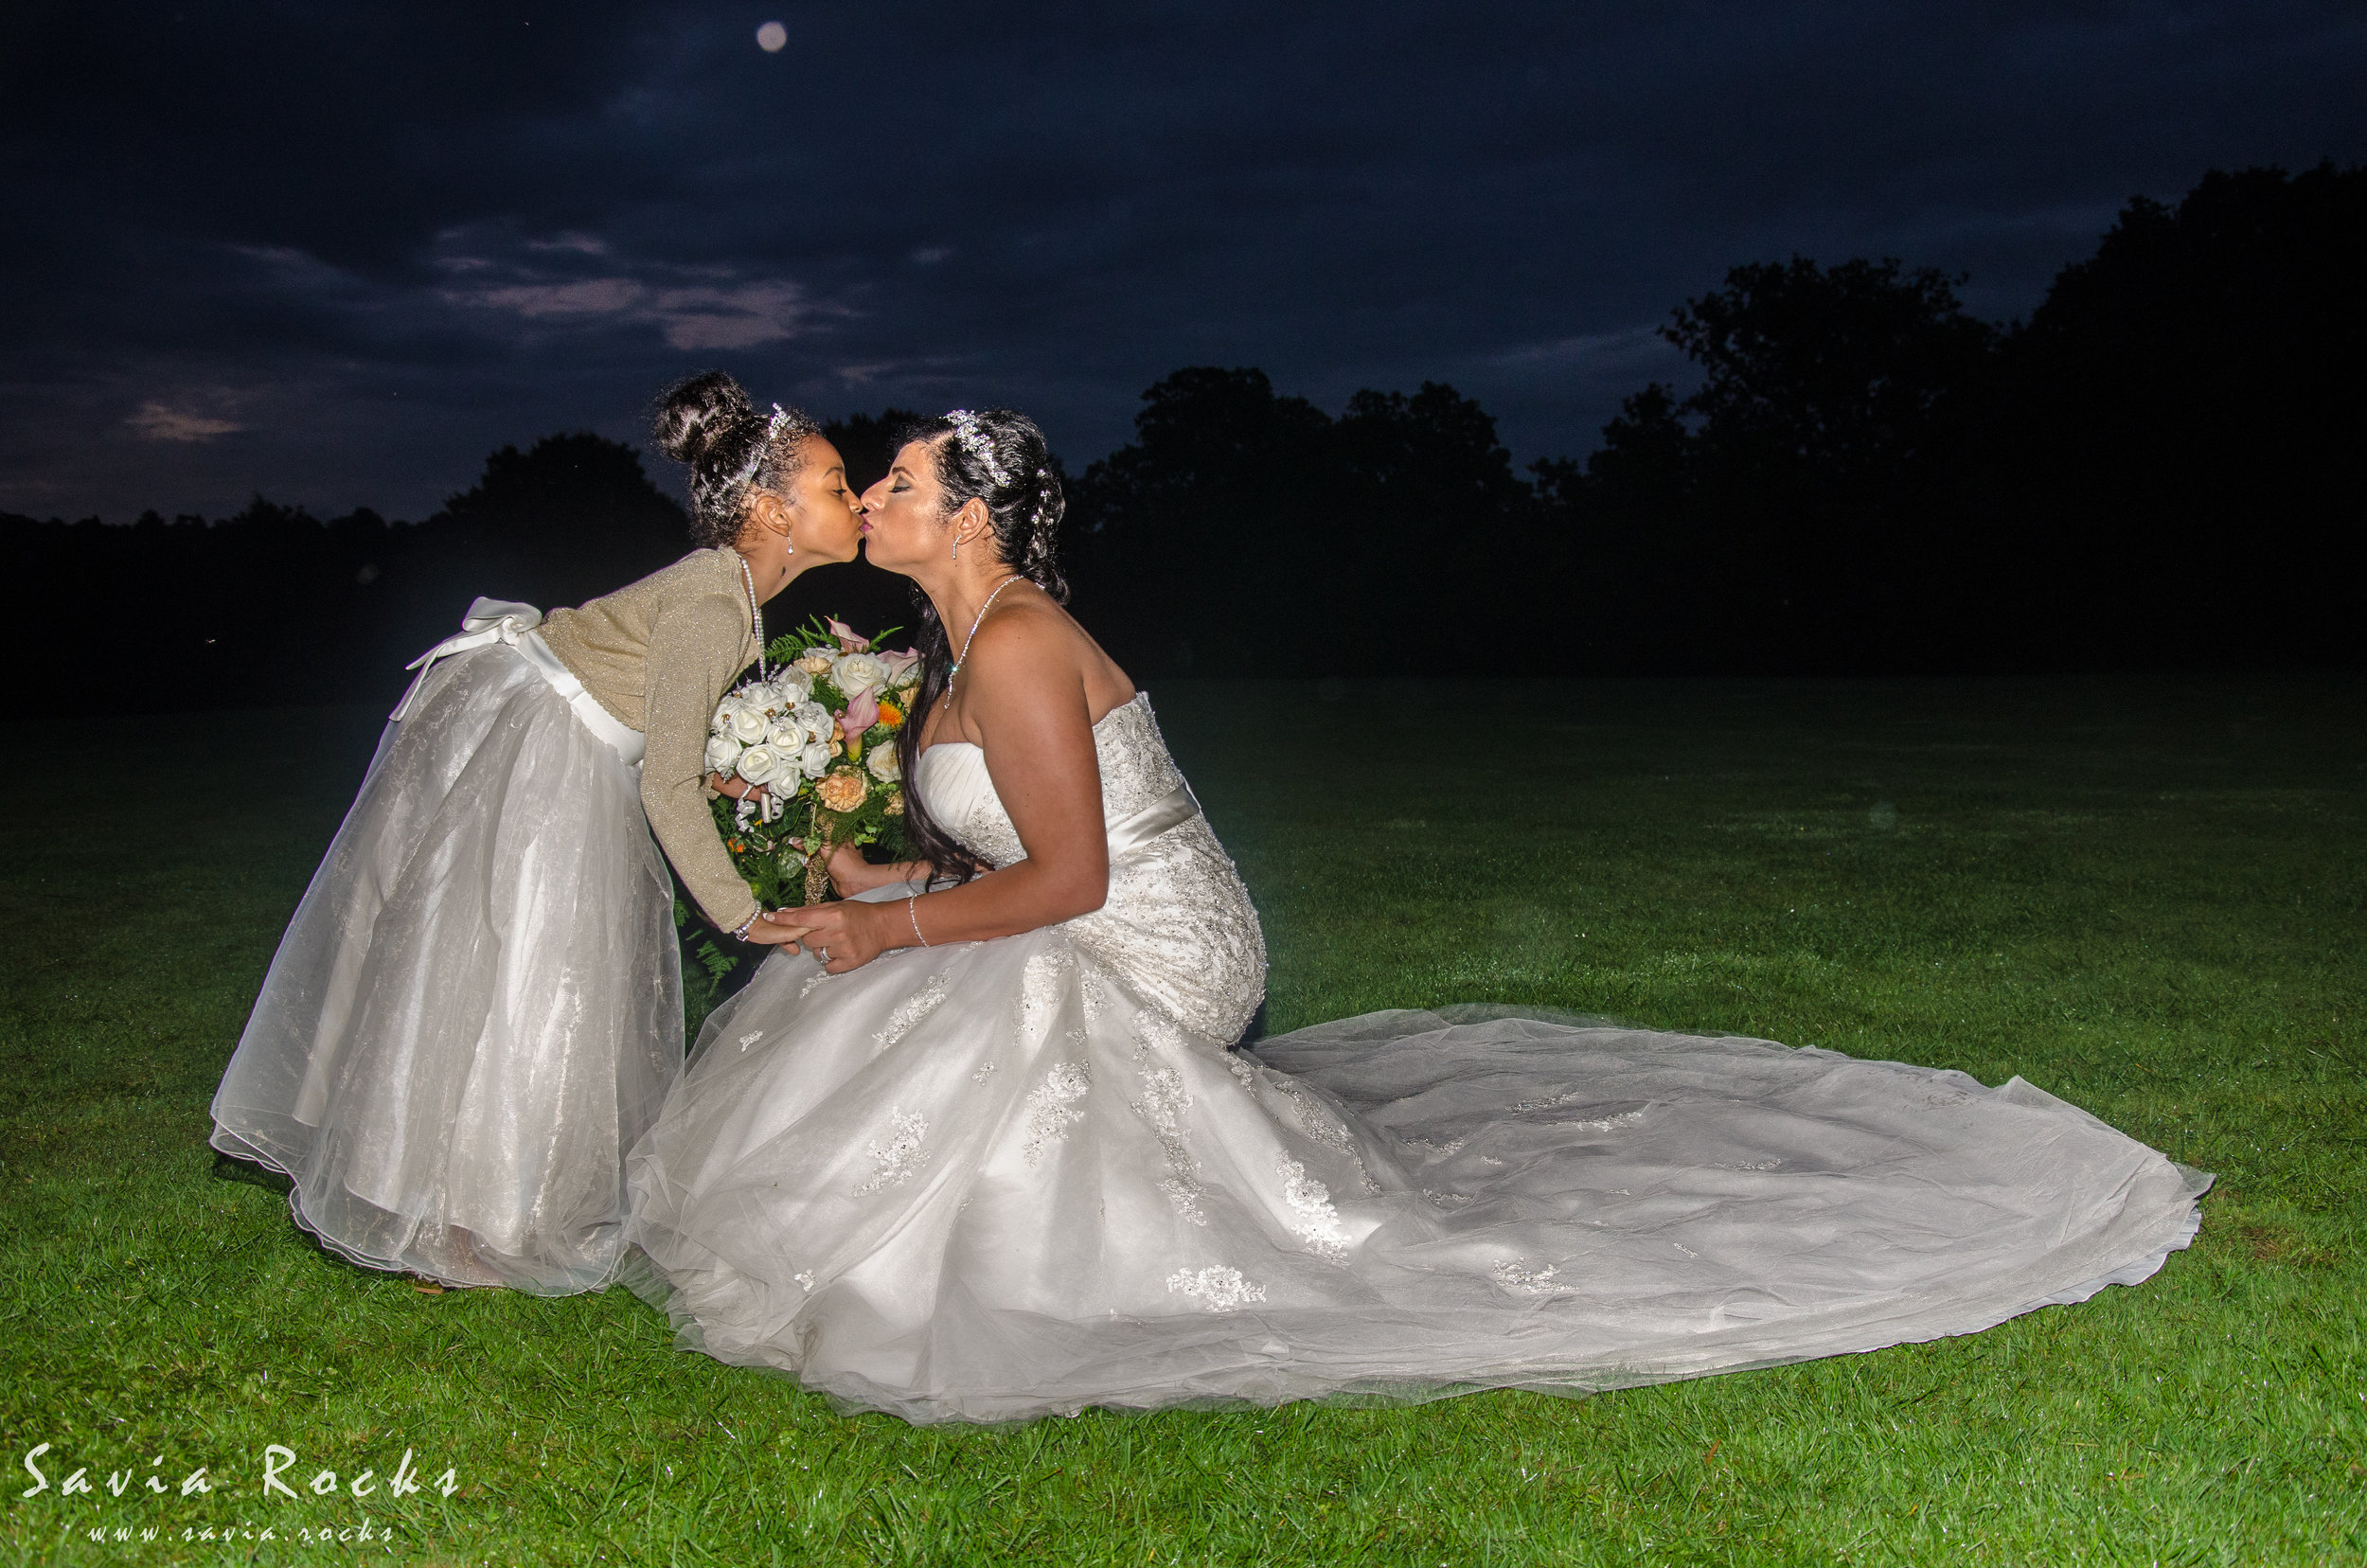 Our Life Time -Platinum Package - Prices Start From £1995Bride & Groom Preparation Throughout The Day (9+ Hours Coverage)You, Will, Receive Approximately 135 To 165 Professionally Edited PhotosTwo Photographers2x USB's & 3x DVD'sLovely DVD Or USB Slide Show Video Made Of Your Pictures Of Your Special Day With Your Favourite Songs Playing Though1 Beautiful 30x20 Quality Canvas's {ApproximatelyA2}1 X Large Beautiful Photo Album {30 Pages}2x Beautiful KeyringsIf You Can't Afford To Pay Payment Plans Are AvailablePictures Take 21 Working Days From The Day After That The Pictures Where Taken To Be Edited. If You Would Like Them Edited Within 14 Working Days It Will Cost An Extra £125 And Within 7 Working Days An Extra £250You Can Now Pay By Card With Savia As She Carries Her {SUM UP Terminal} - Which Is A Safe And Secure Way To Pay. {Cards Accepted Are: Visa - VPAY - MasterCard - Maestro - American Express And Apple Pay}